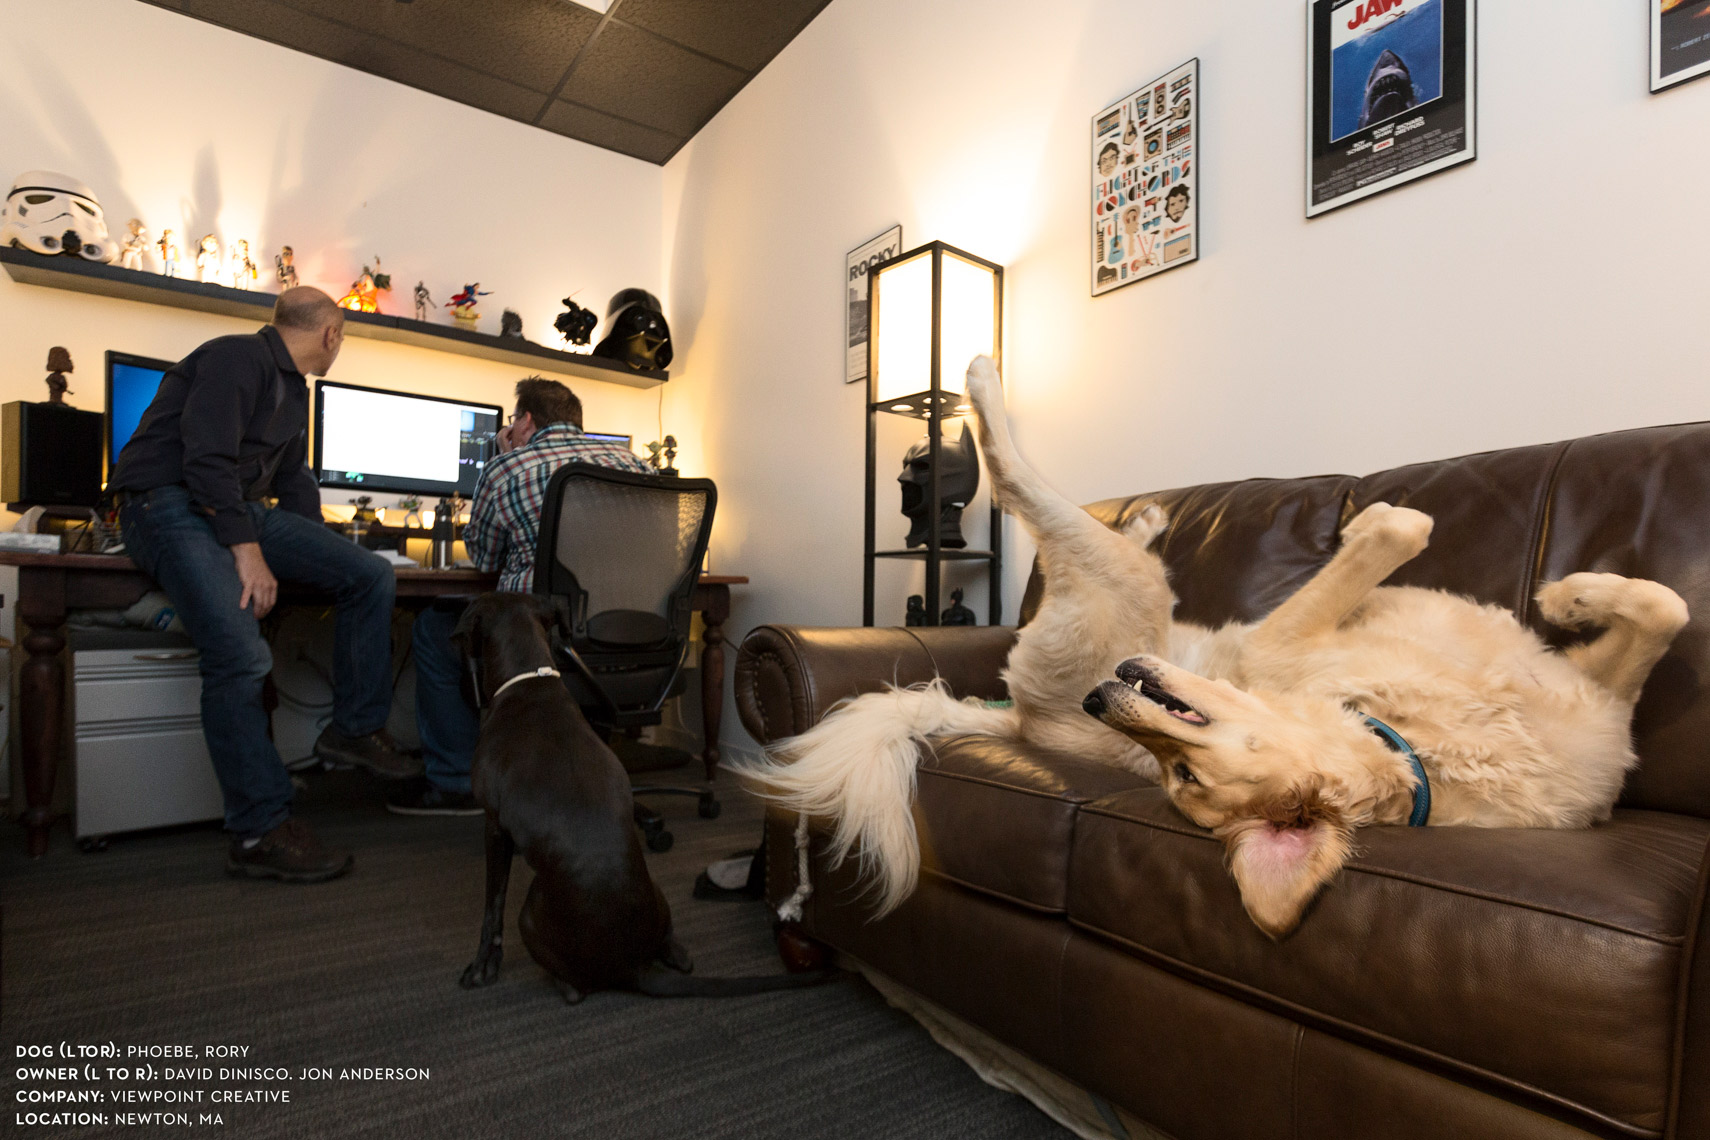 Dogs at work: Rory and Pheobe hanging out at Viewpoint Creative